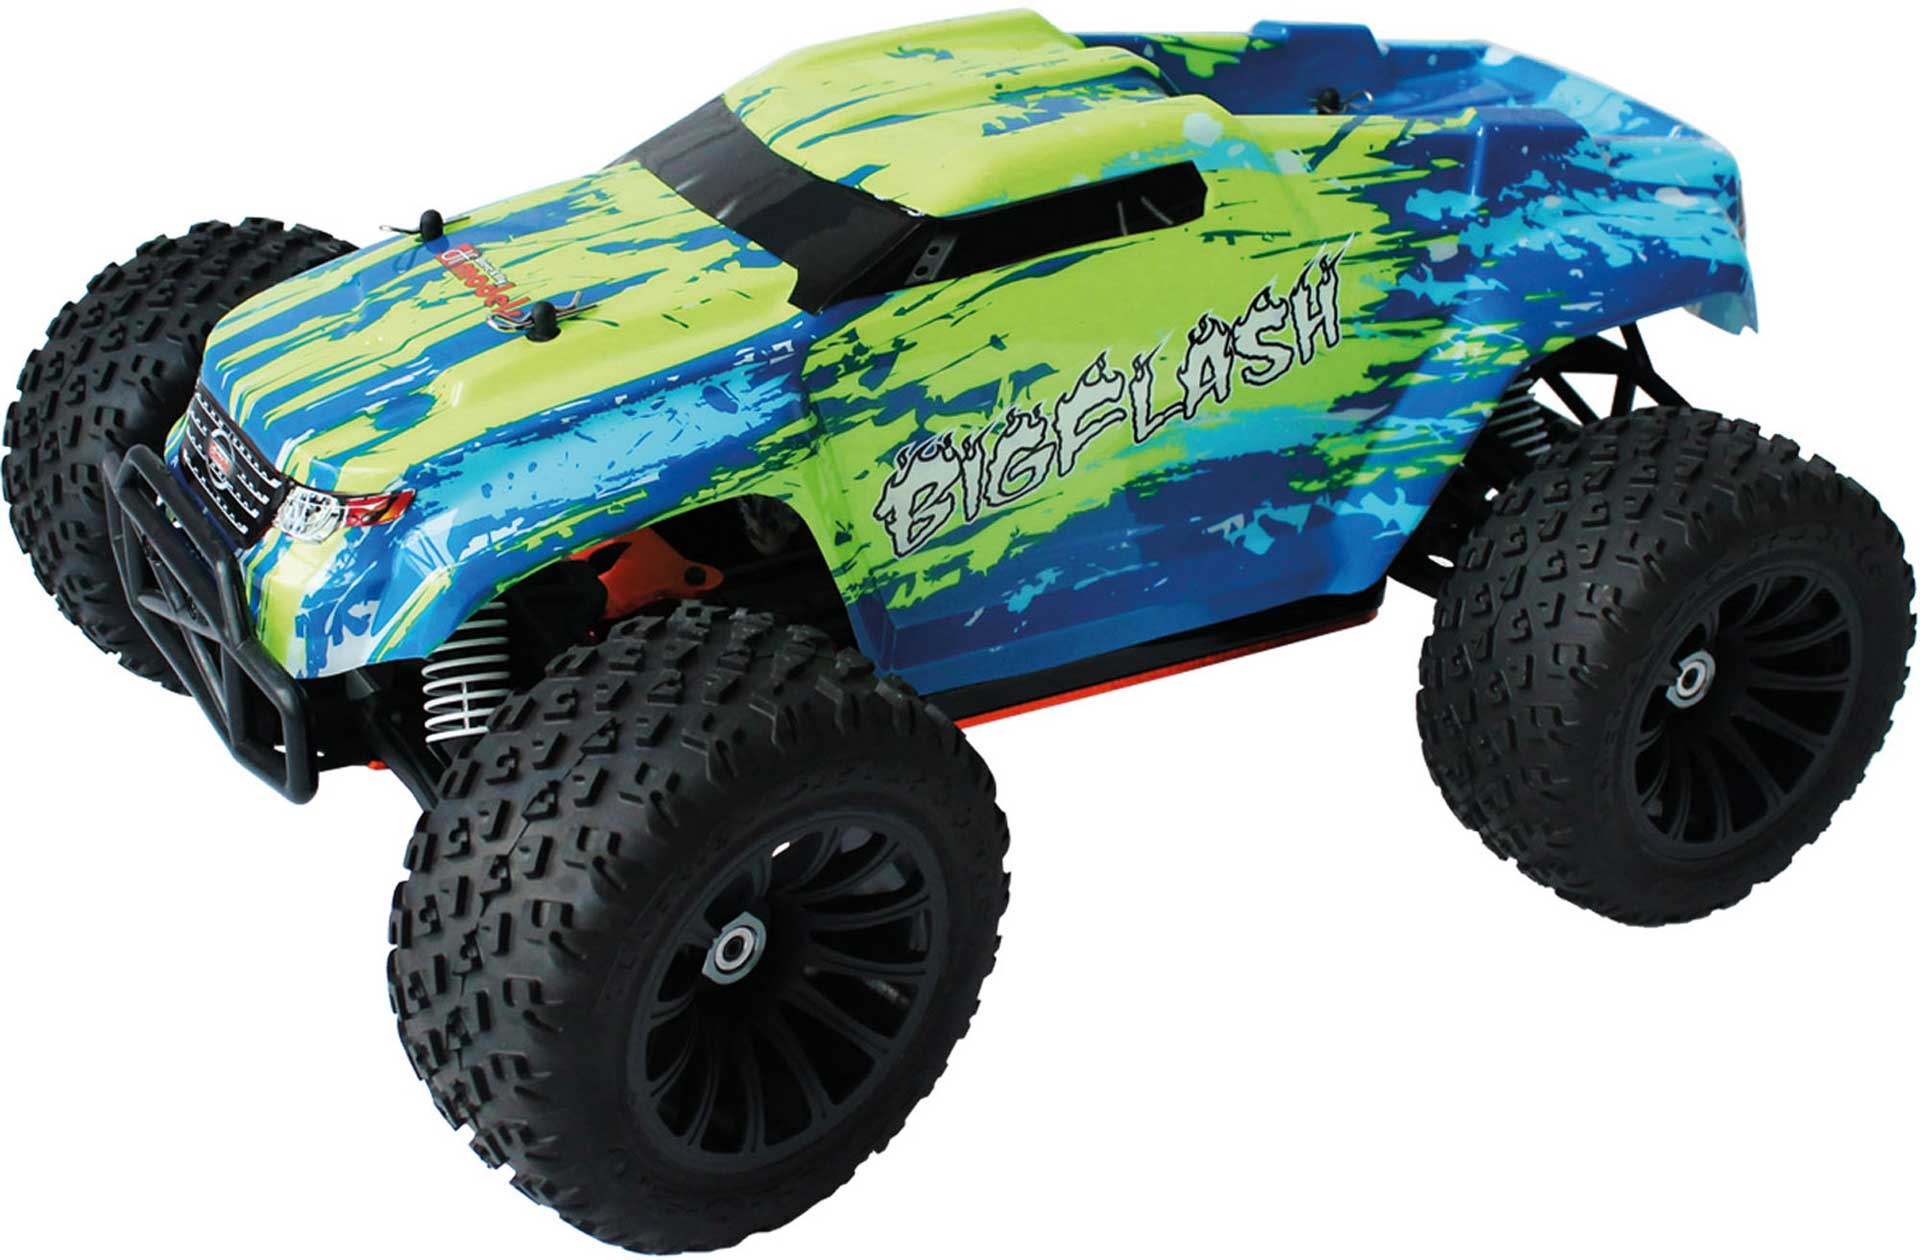 DRIVE & FLY MODELS BIG FLASH BRUSHED 1/10 XL TRUCK RTR 4WD